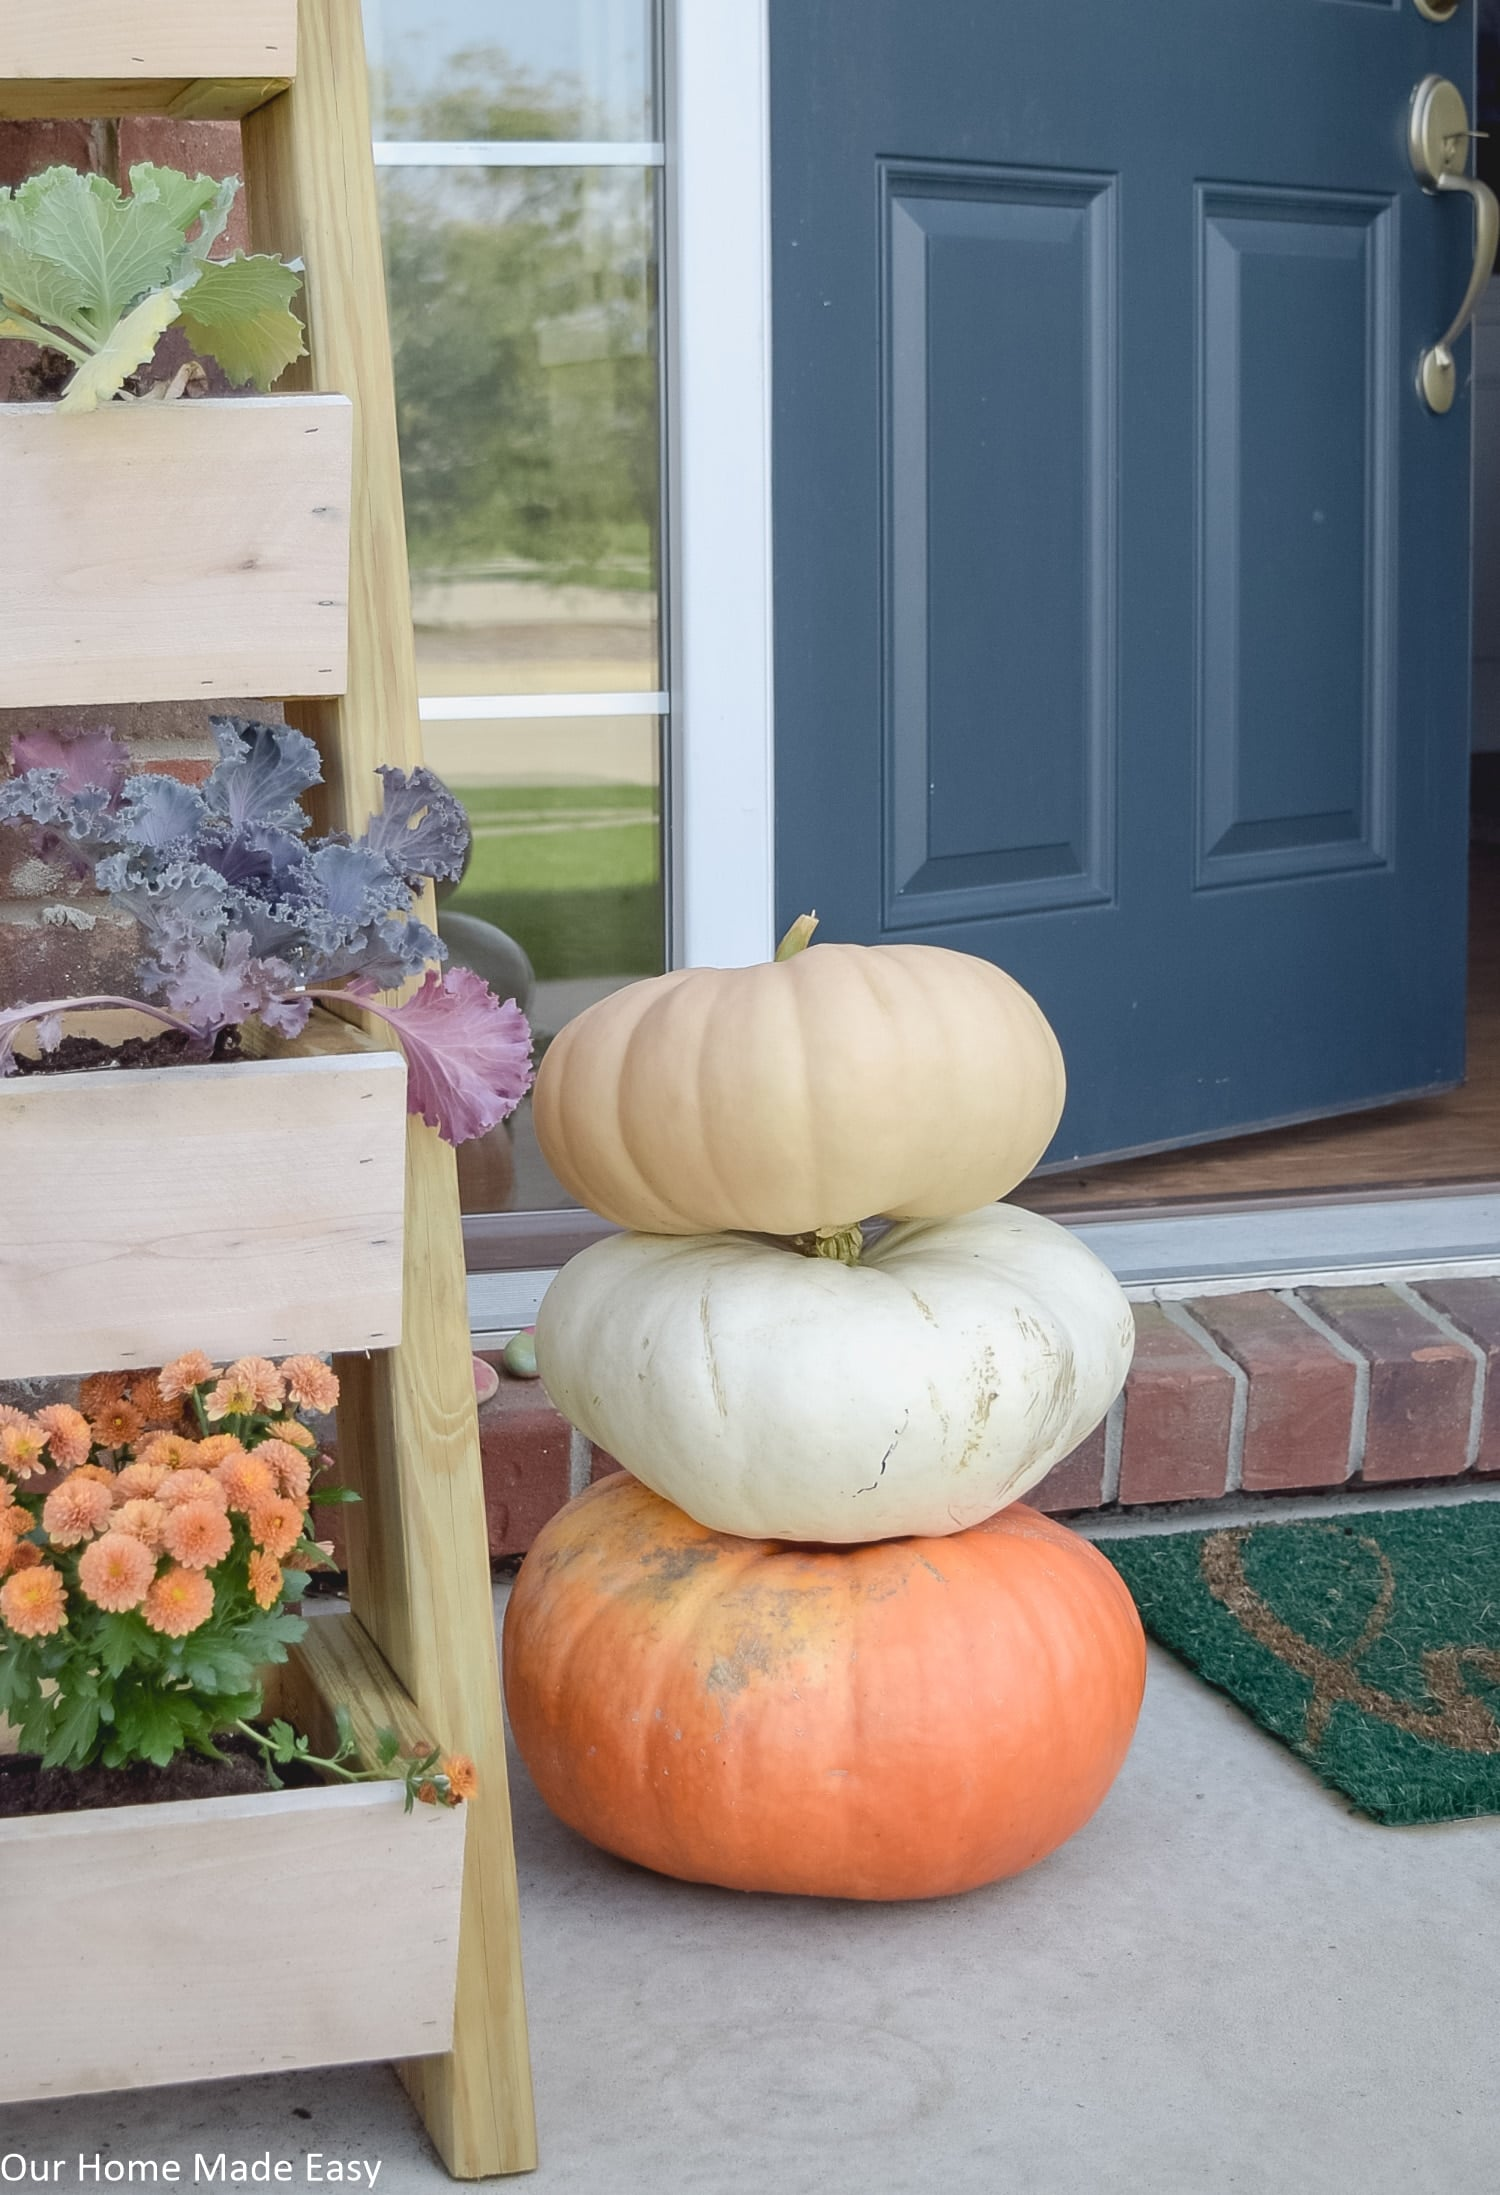 this simple fall front porch has small accents like pots of mums and harvest pumpkins